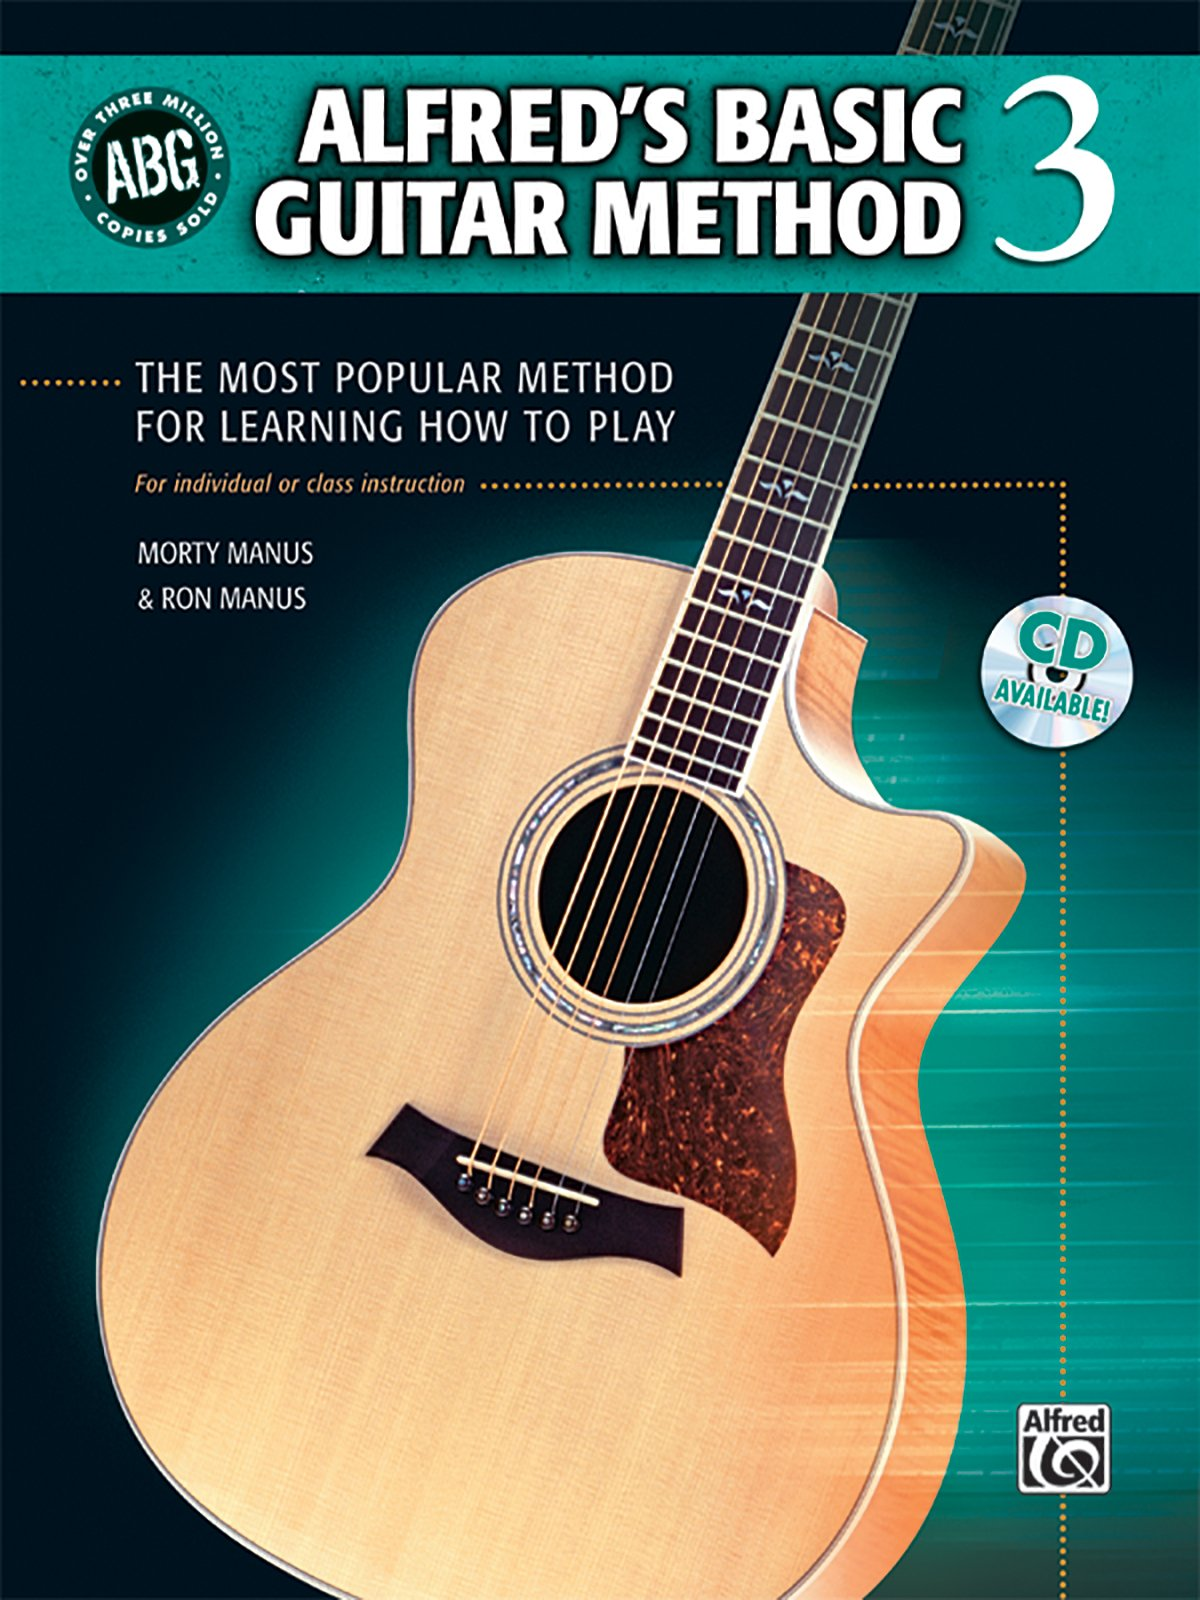 Alfreds Basic Guitar Method Bk 3 The Most Popular For How To Read Chord Diagrams Learn Play Music Learning Library Morty Manus Ron 9780739048924